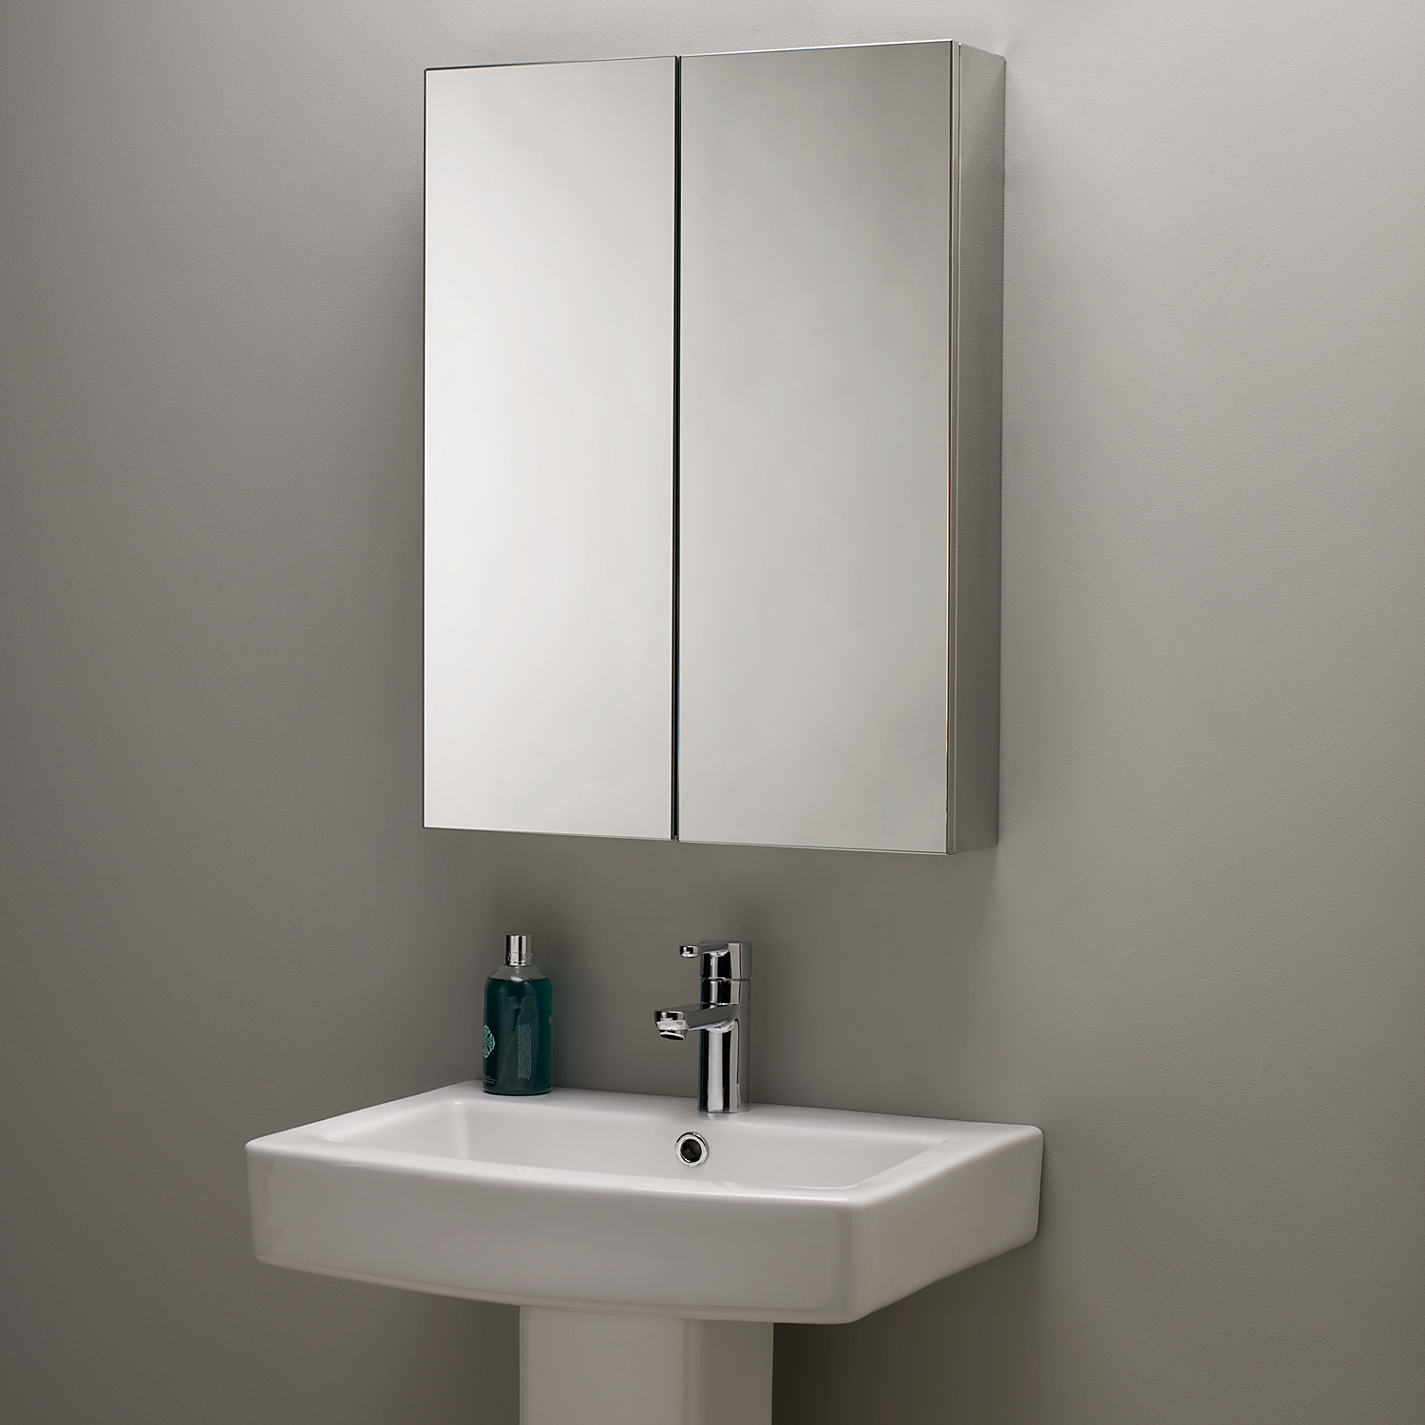 bathroom wall cabinets for bathroom vanities ideas - Bathroom Designs Adelaide